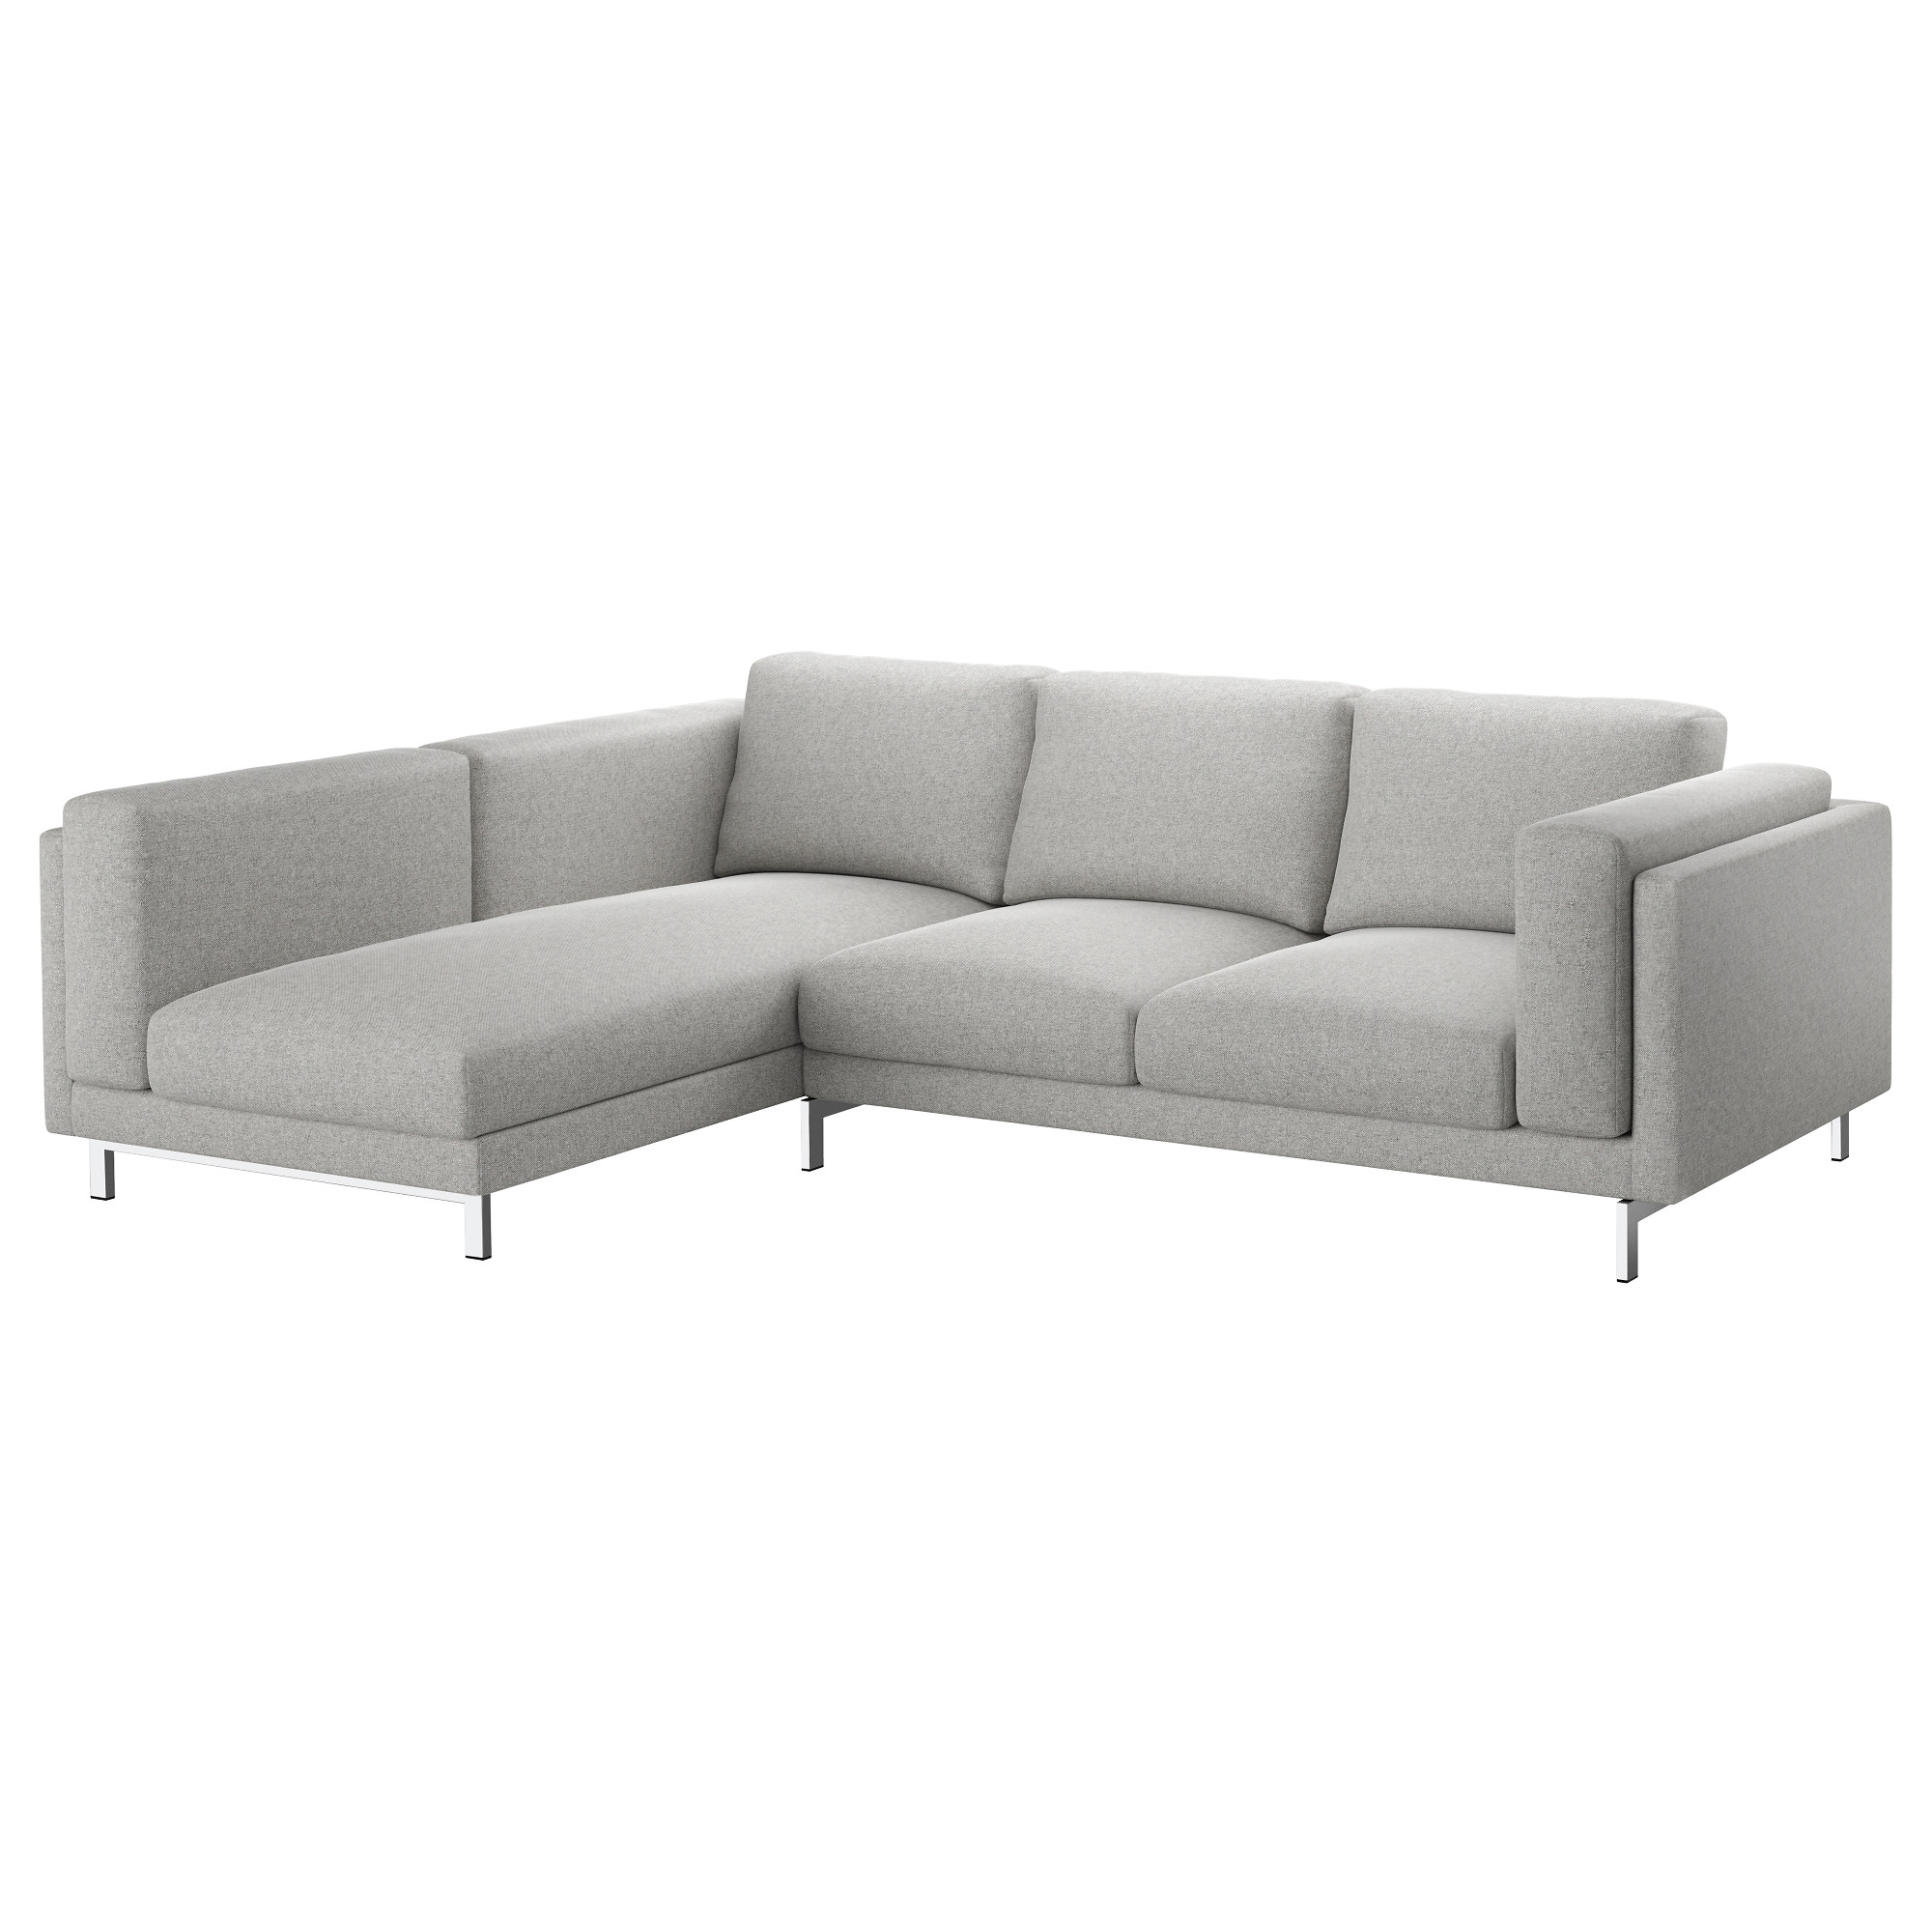 NOCKEBY Sofa   With Chaise, Left/Tallmyra White/black, Chrome Plated   IKEA